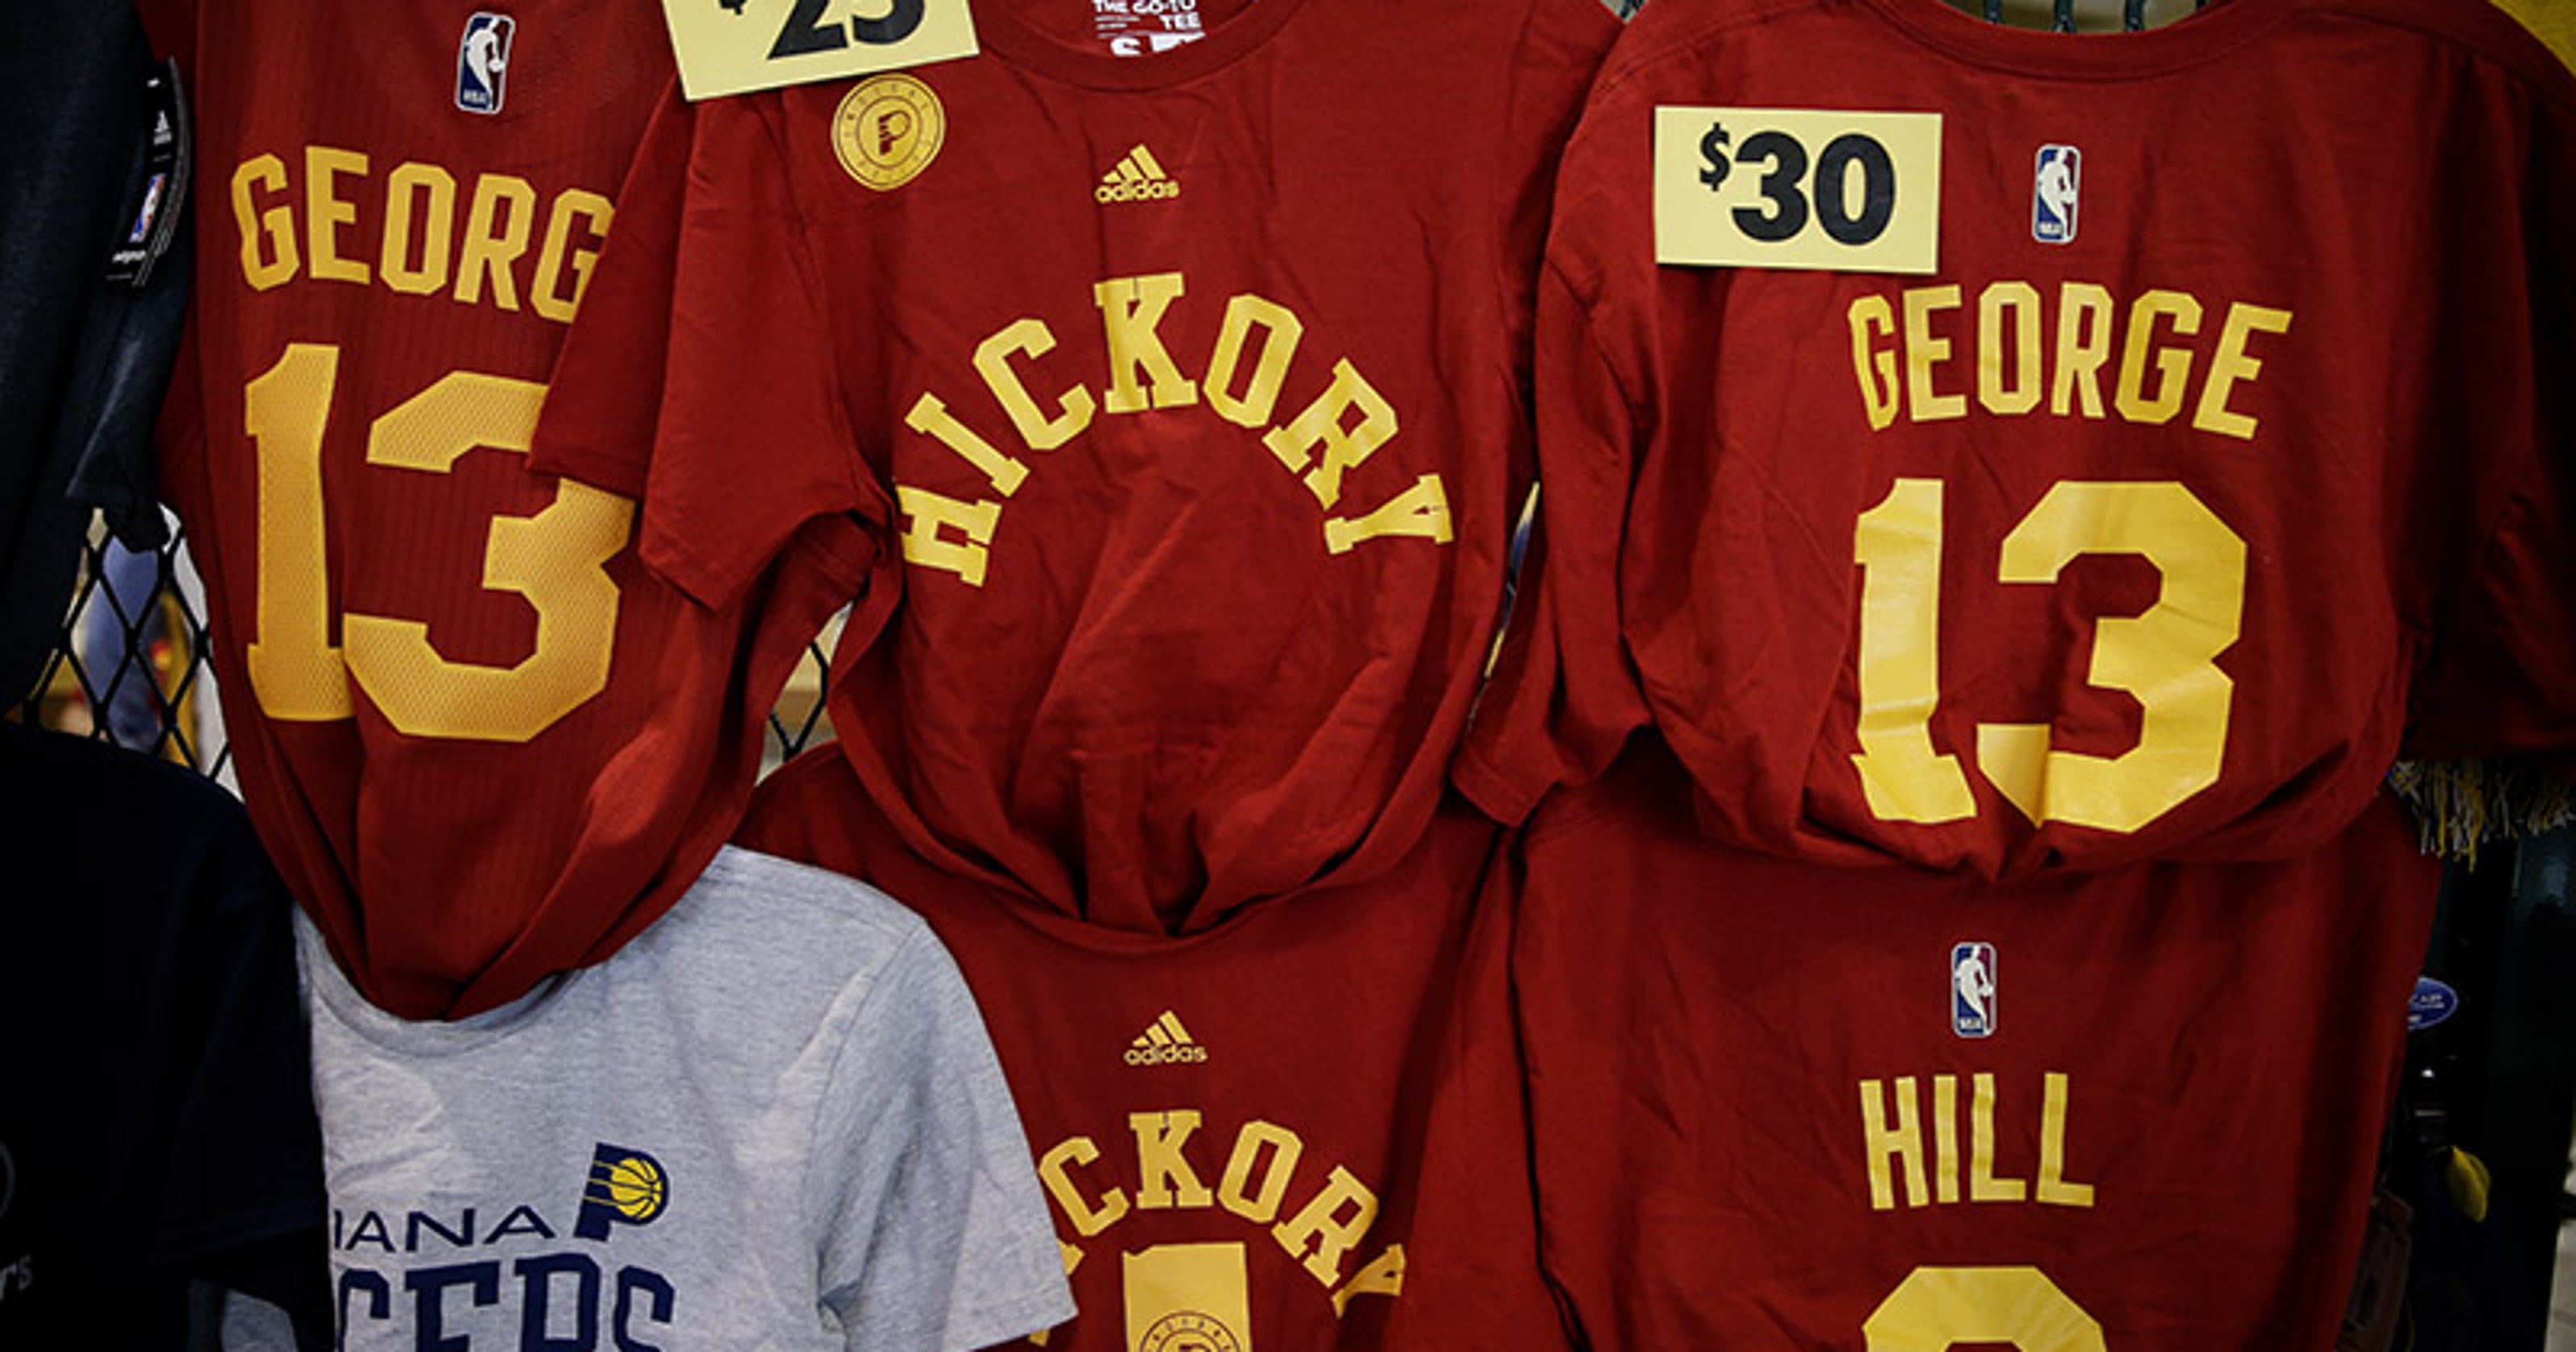 Pacers  Hickory branding exceeds expectations 3a7bfe52d